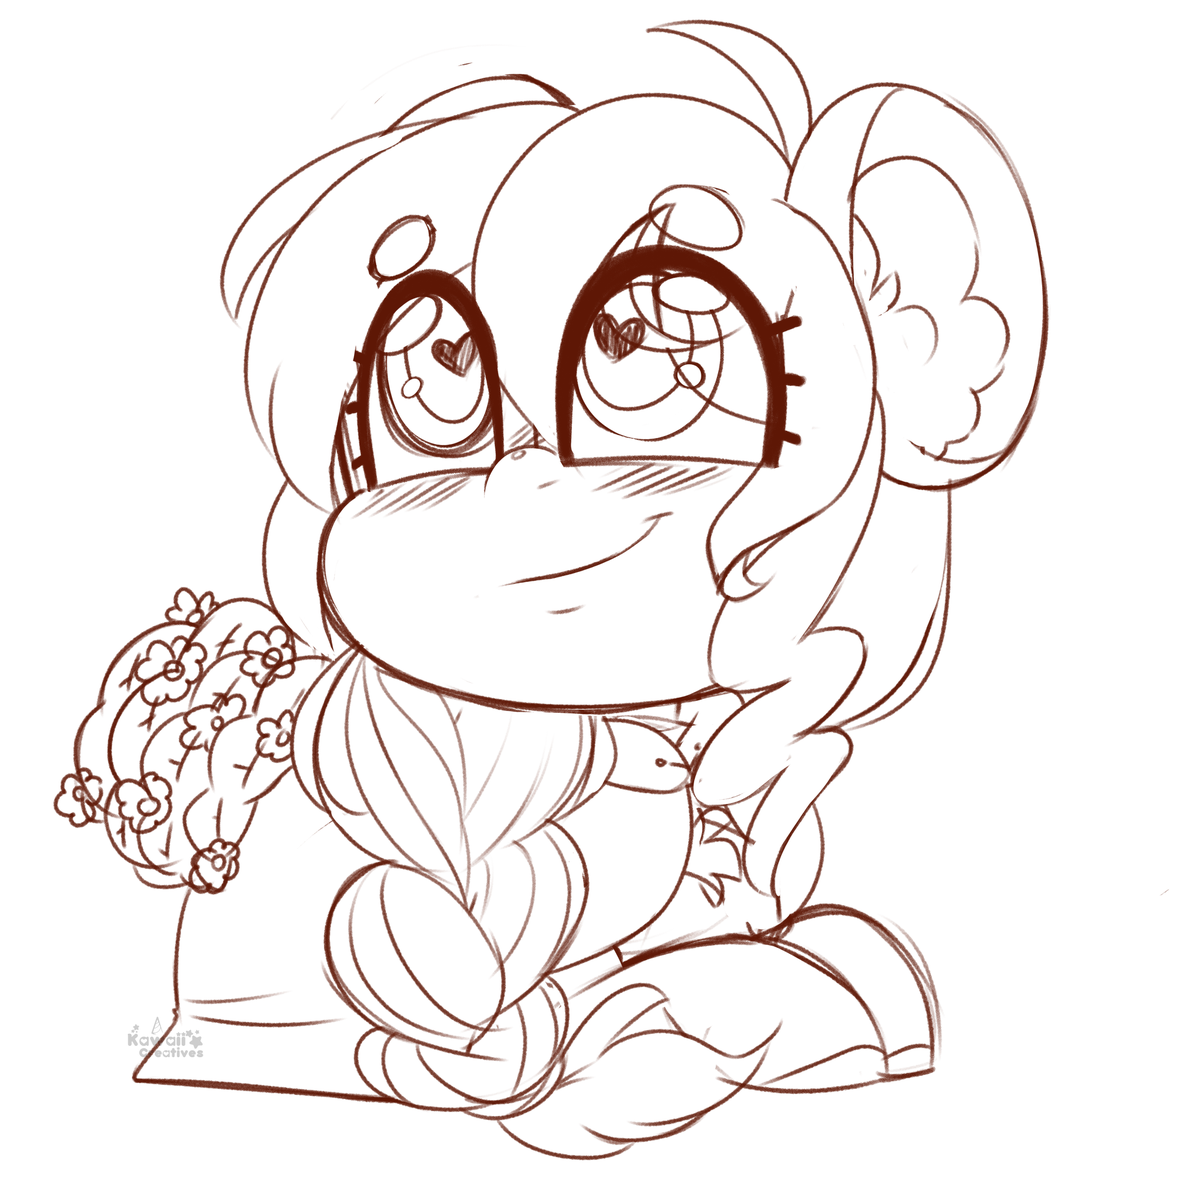 Today was fun! Sorry for the low energy today, still kinda recovering from last night <3 Thank you all for coming and watching me doodle. We raided our teammate @CheriiMeme , so go show them some love!  #SugarCrush 🍬 #sketch #doodle #twitch #streamer